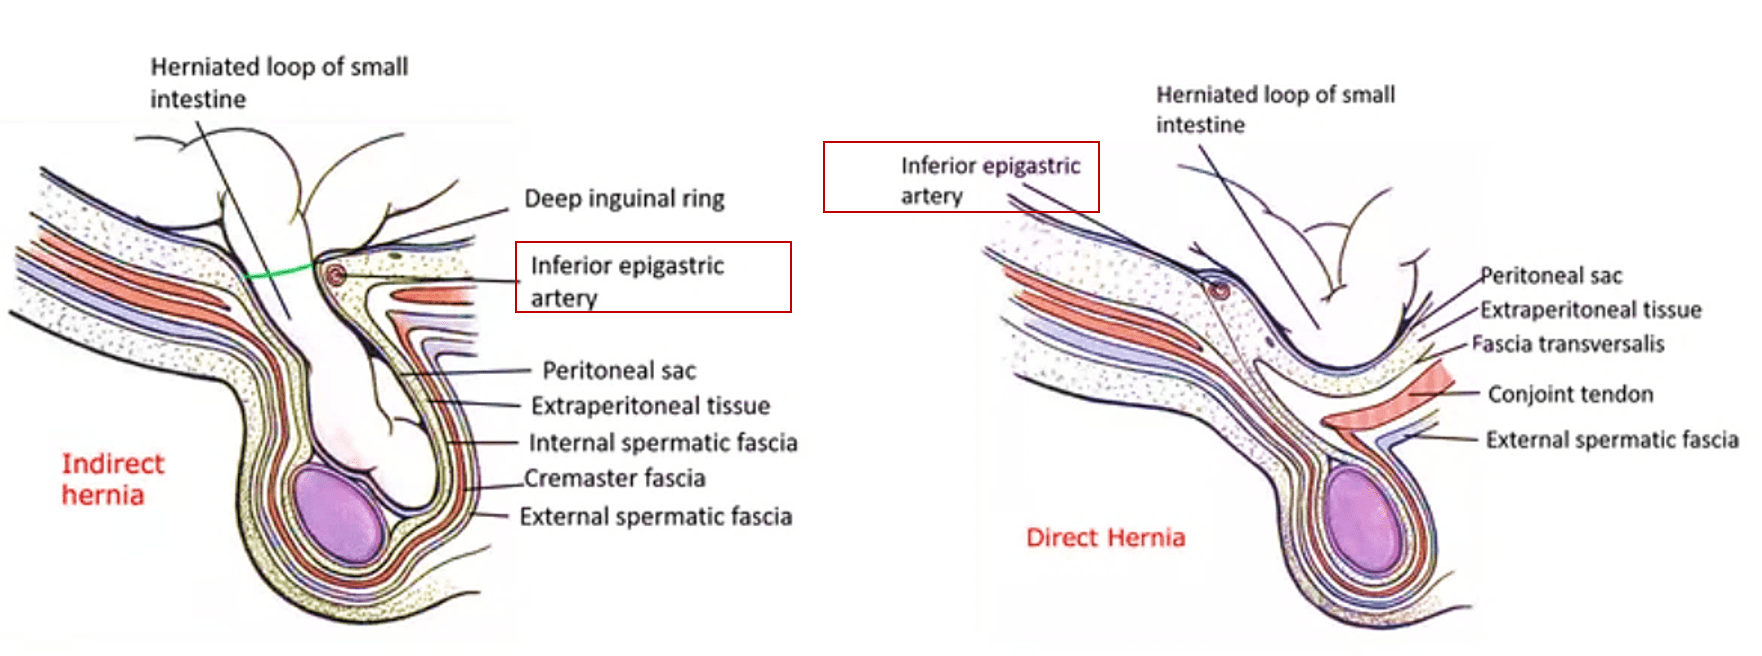 Outstanding Anatomy Inguinal Hernia Component - Anatomy Ideas ...